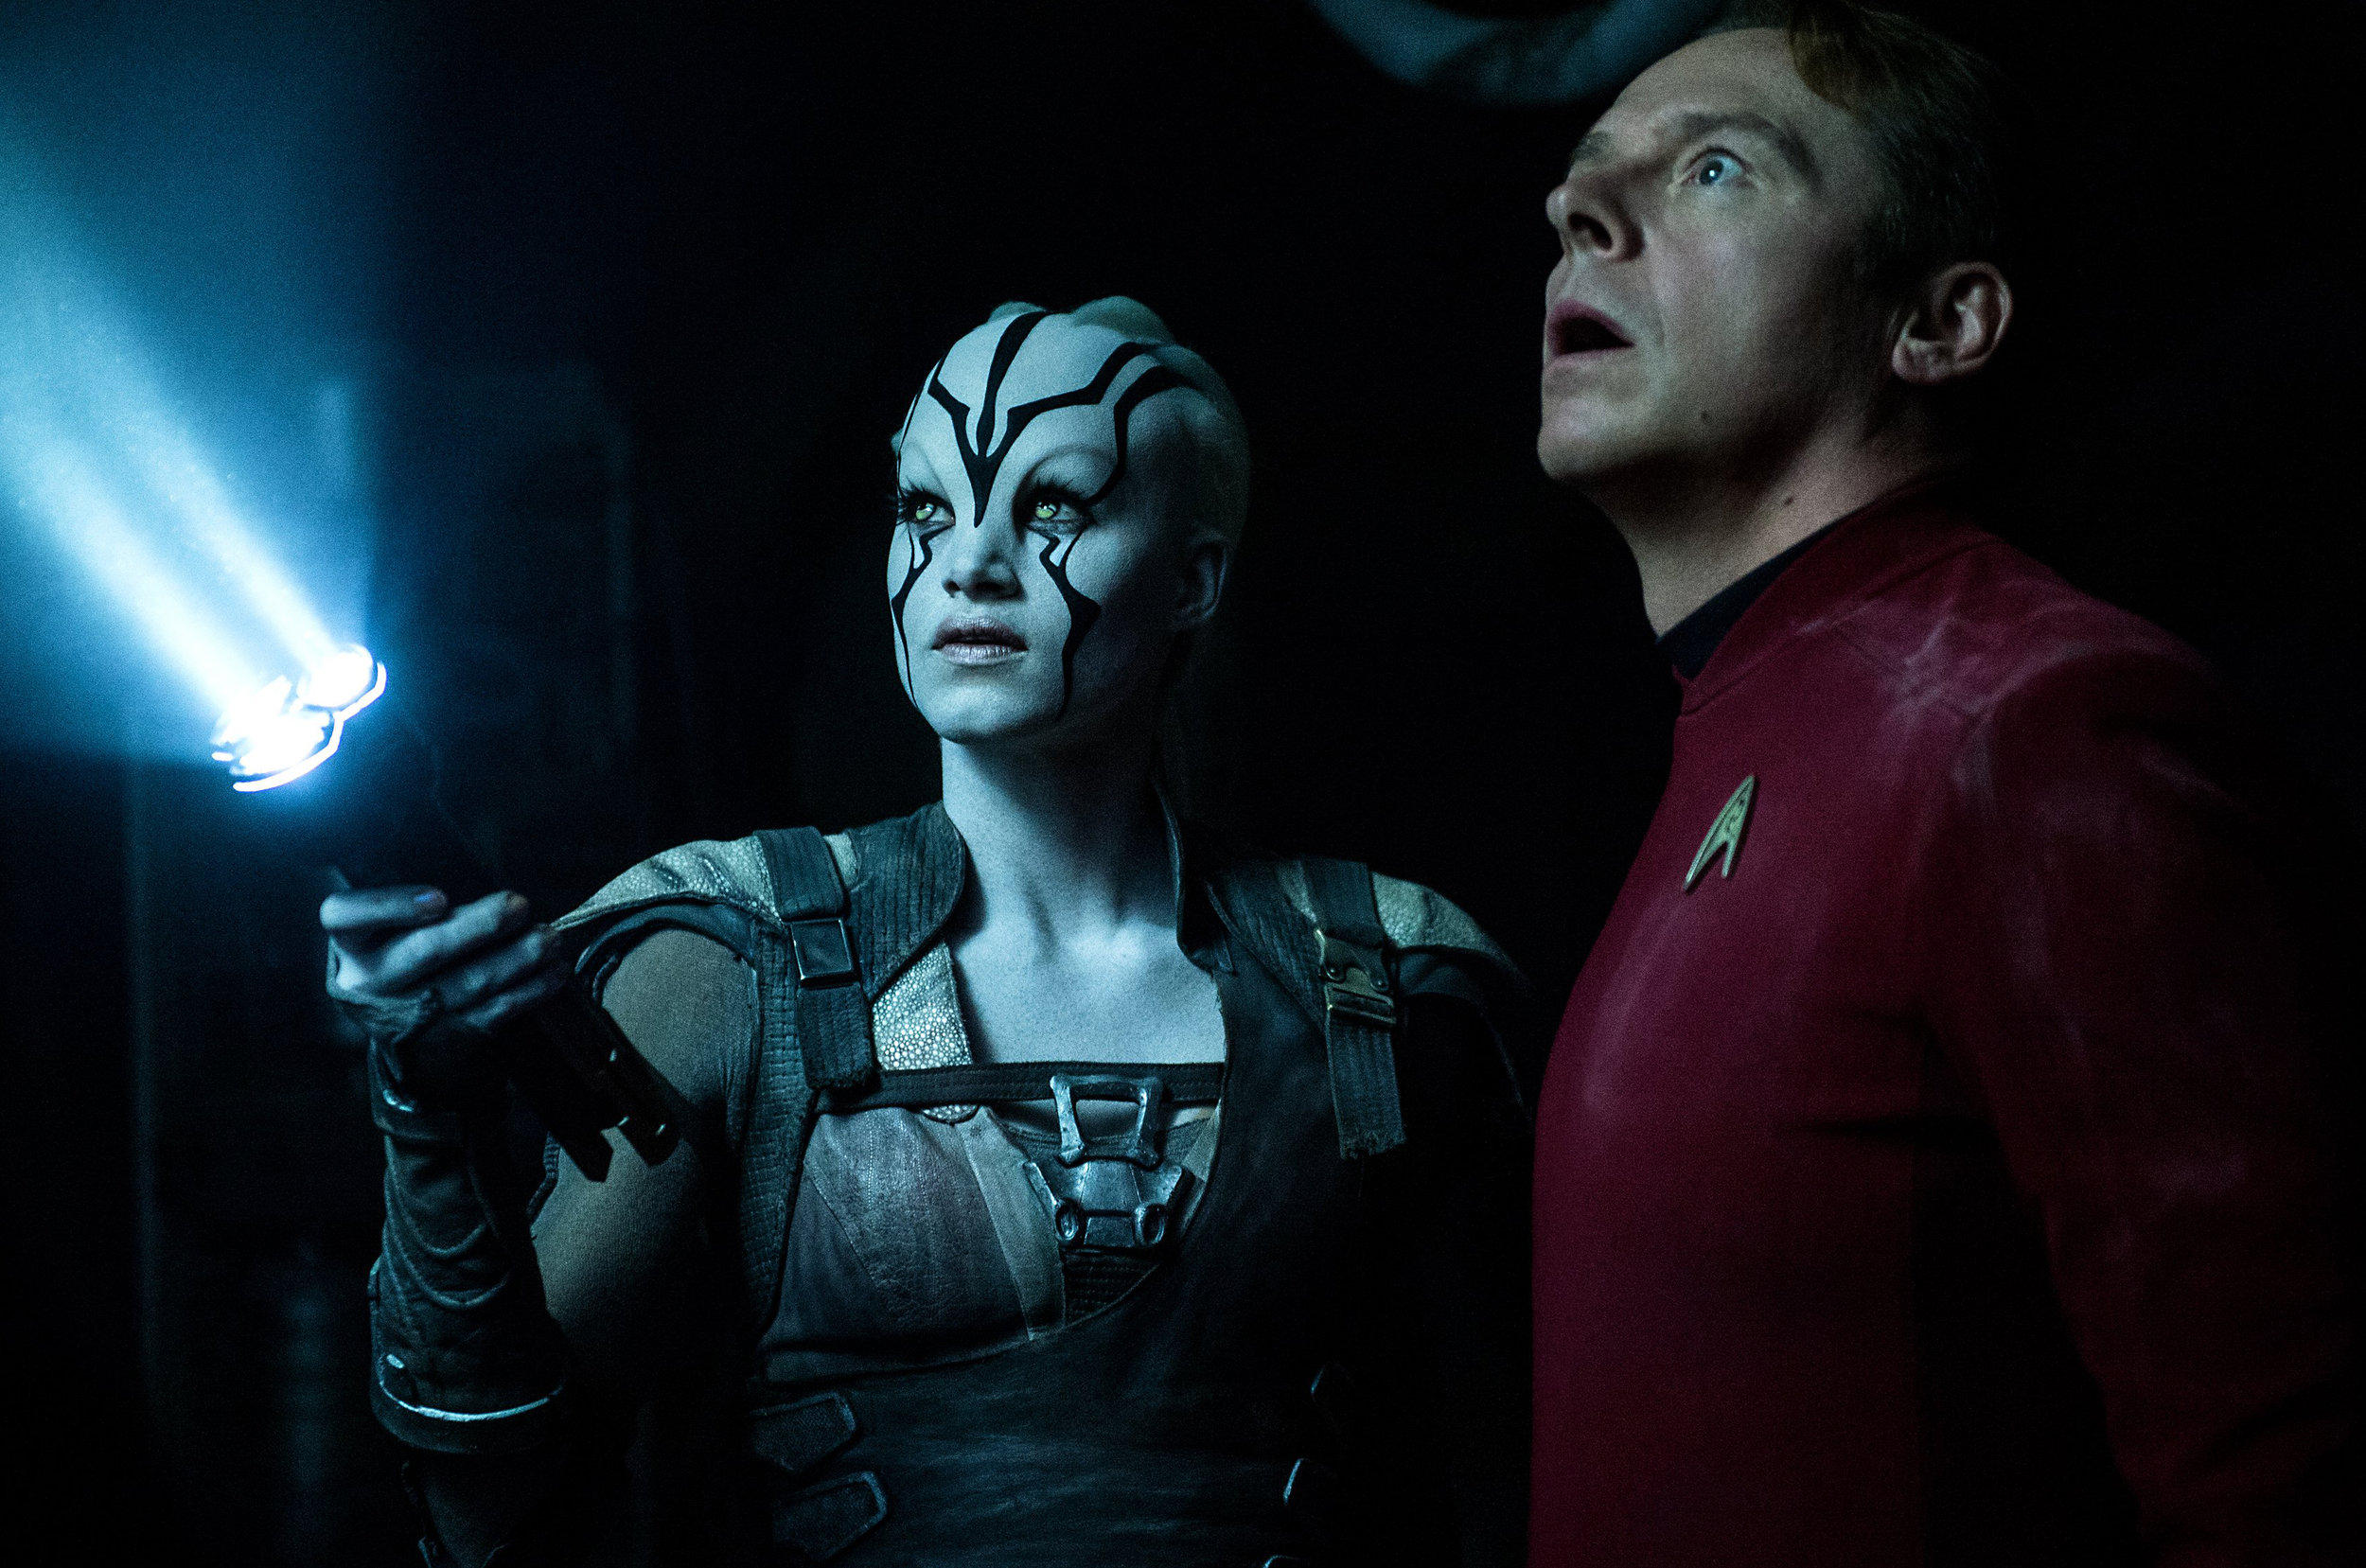 Sofia Boutella and Simon Pegg in 'Star Trek Beyond'.